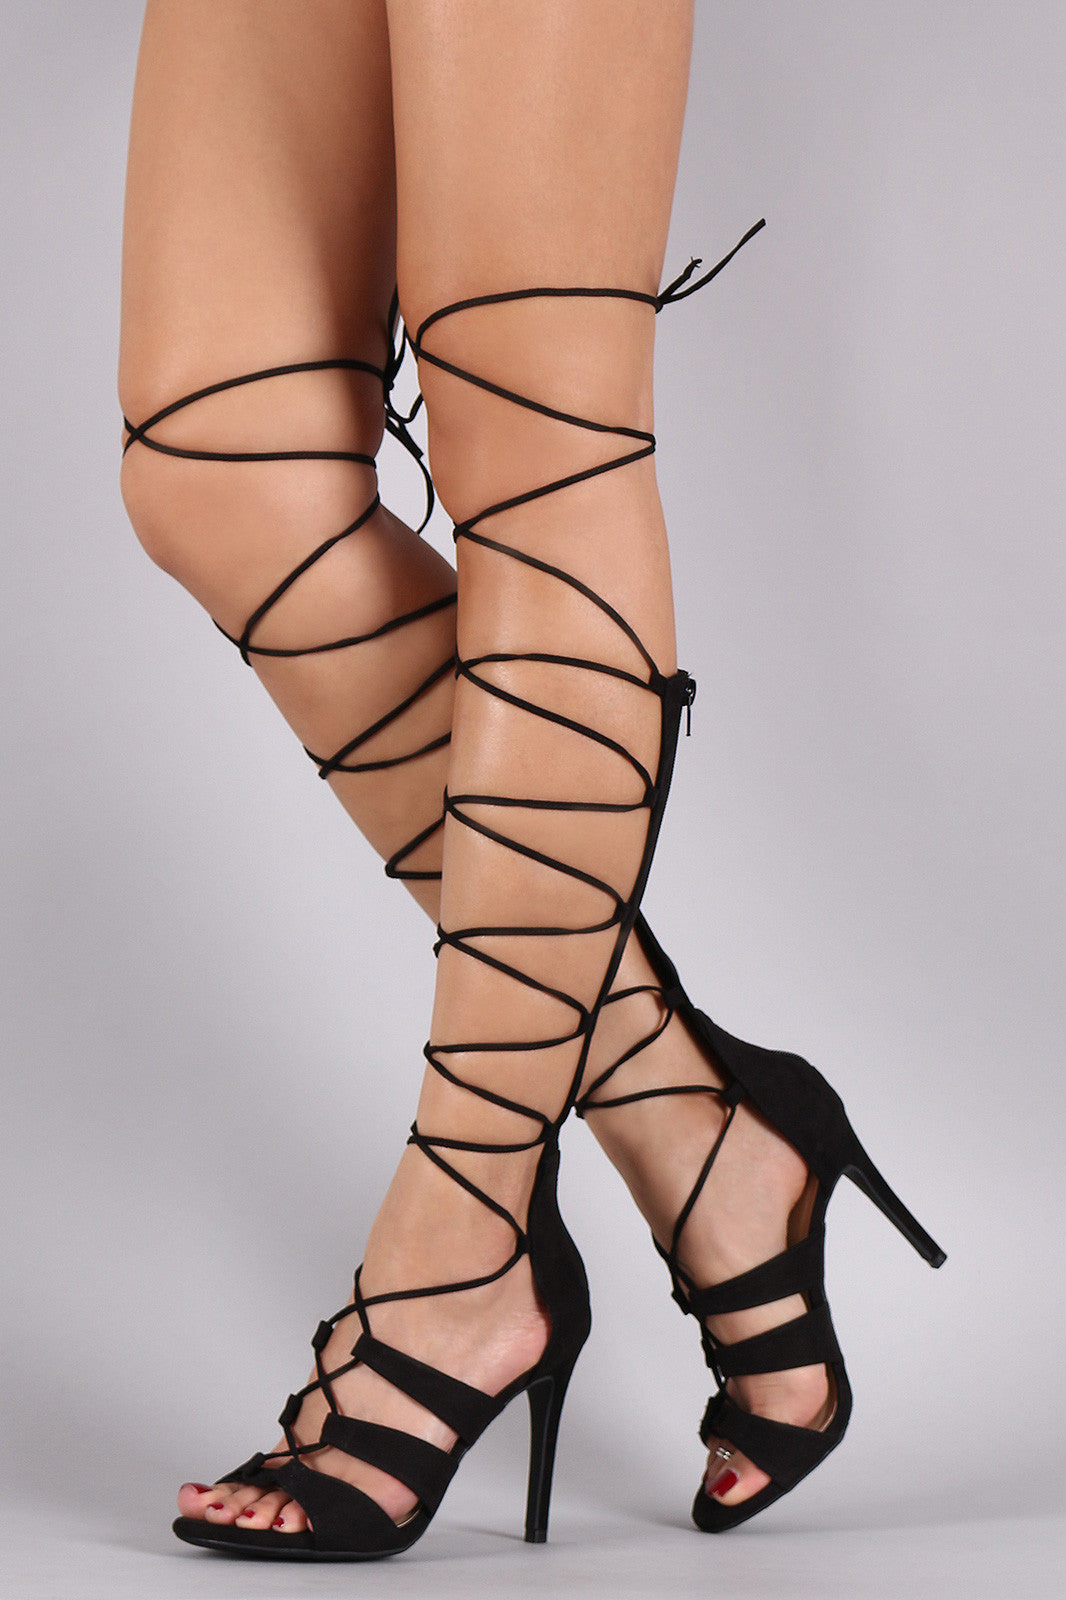 Wild Diva Lounge Suede Strappy Lace Up Gladiator Heel - Thick 'N' Curvy Shop - 2